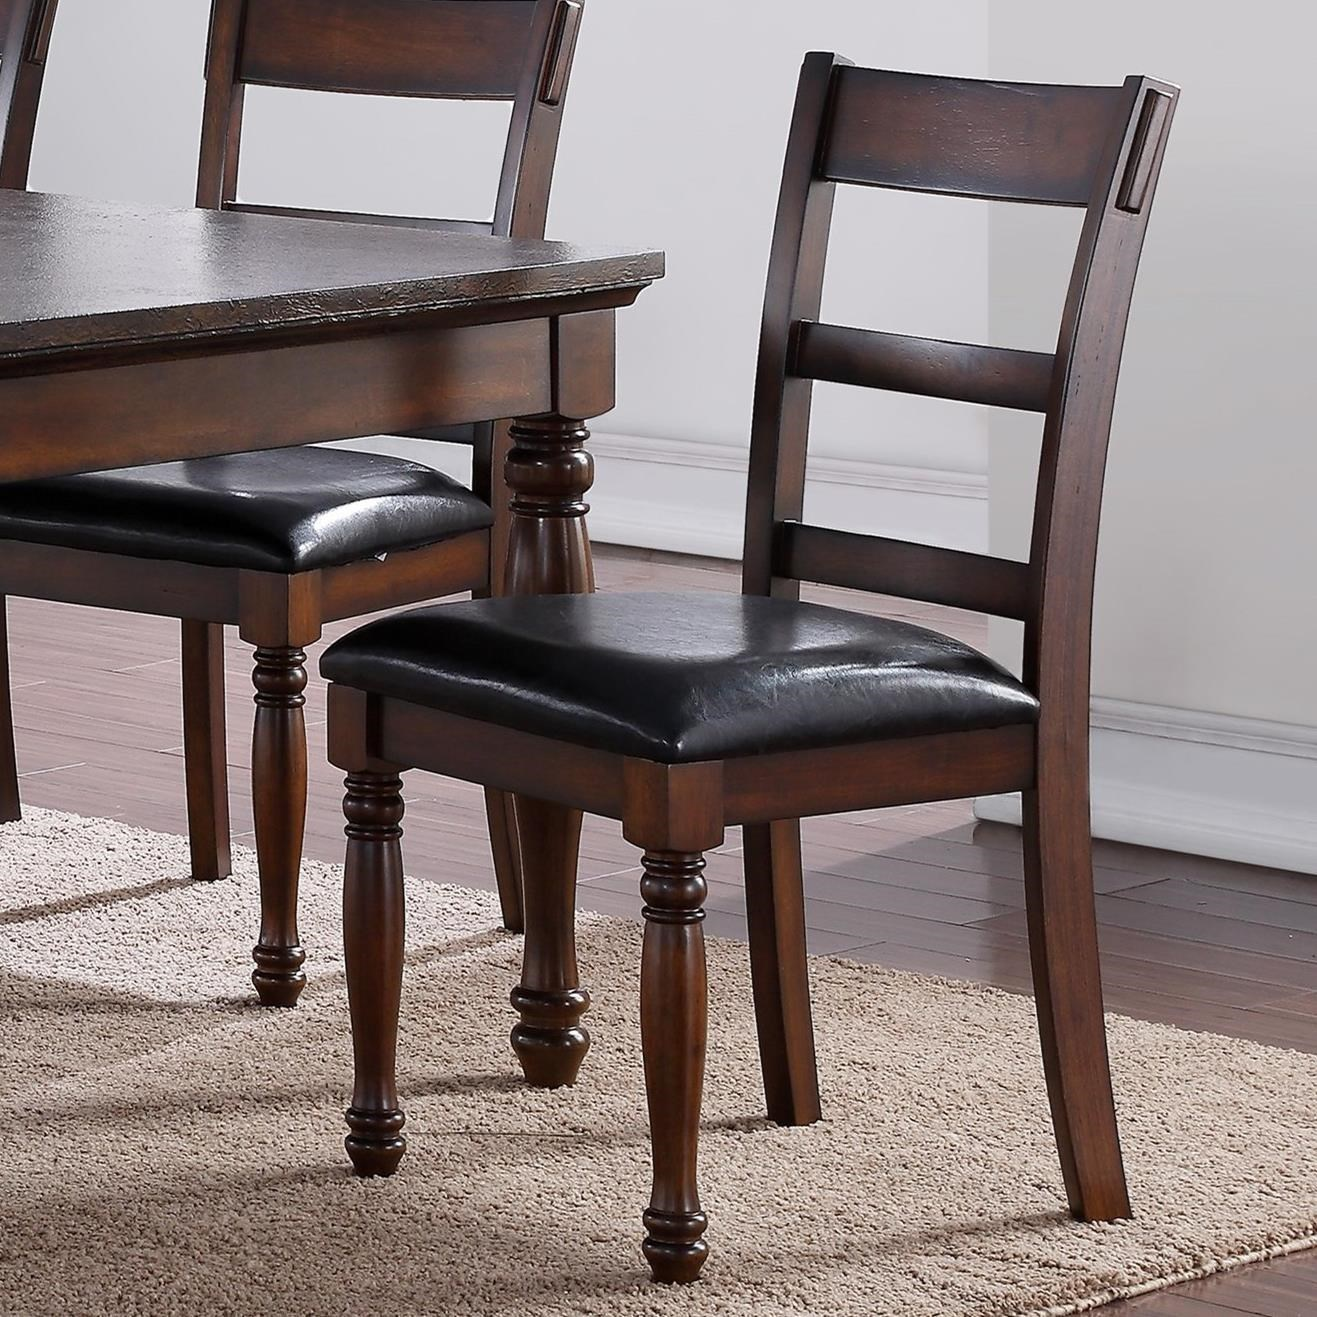 Genial Legends Furniture Breckenridge Breckenridge Side Chair With Upholstered Seat